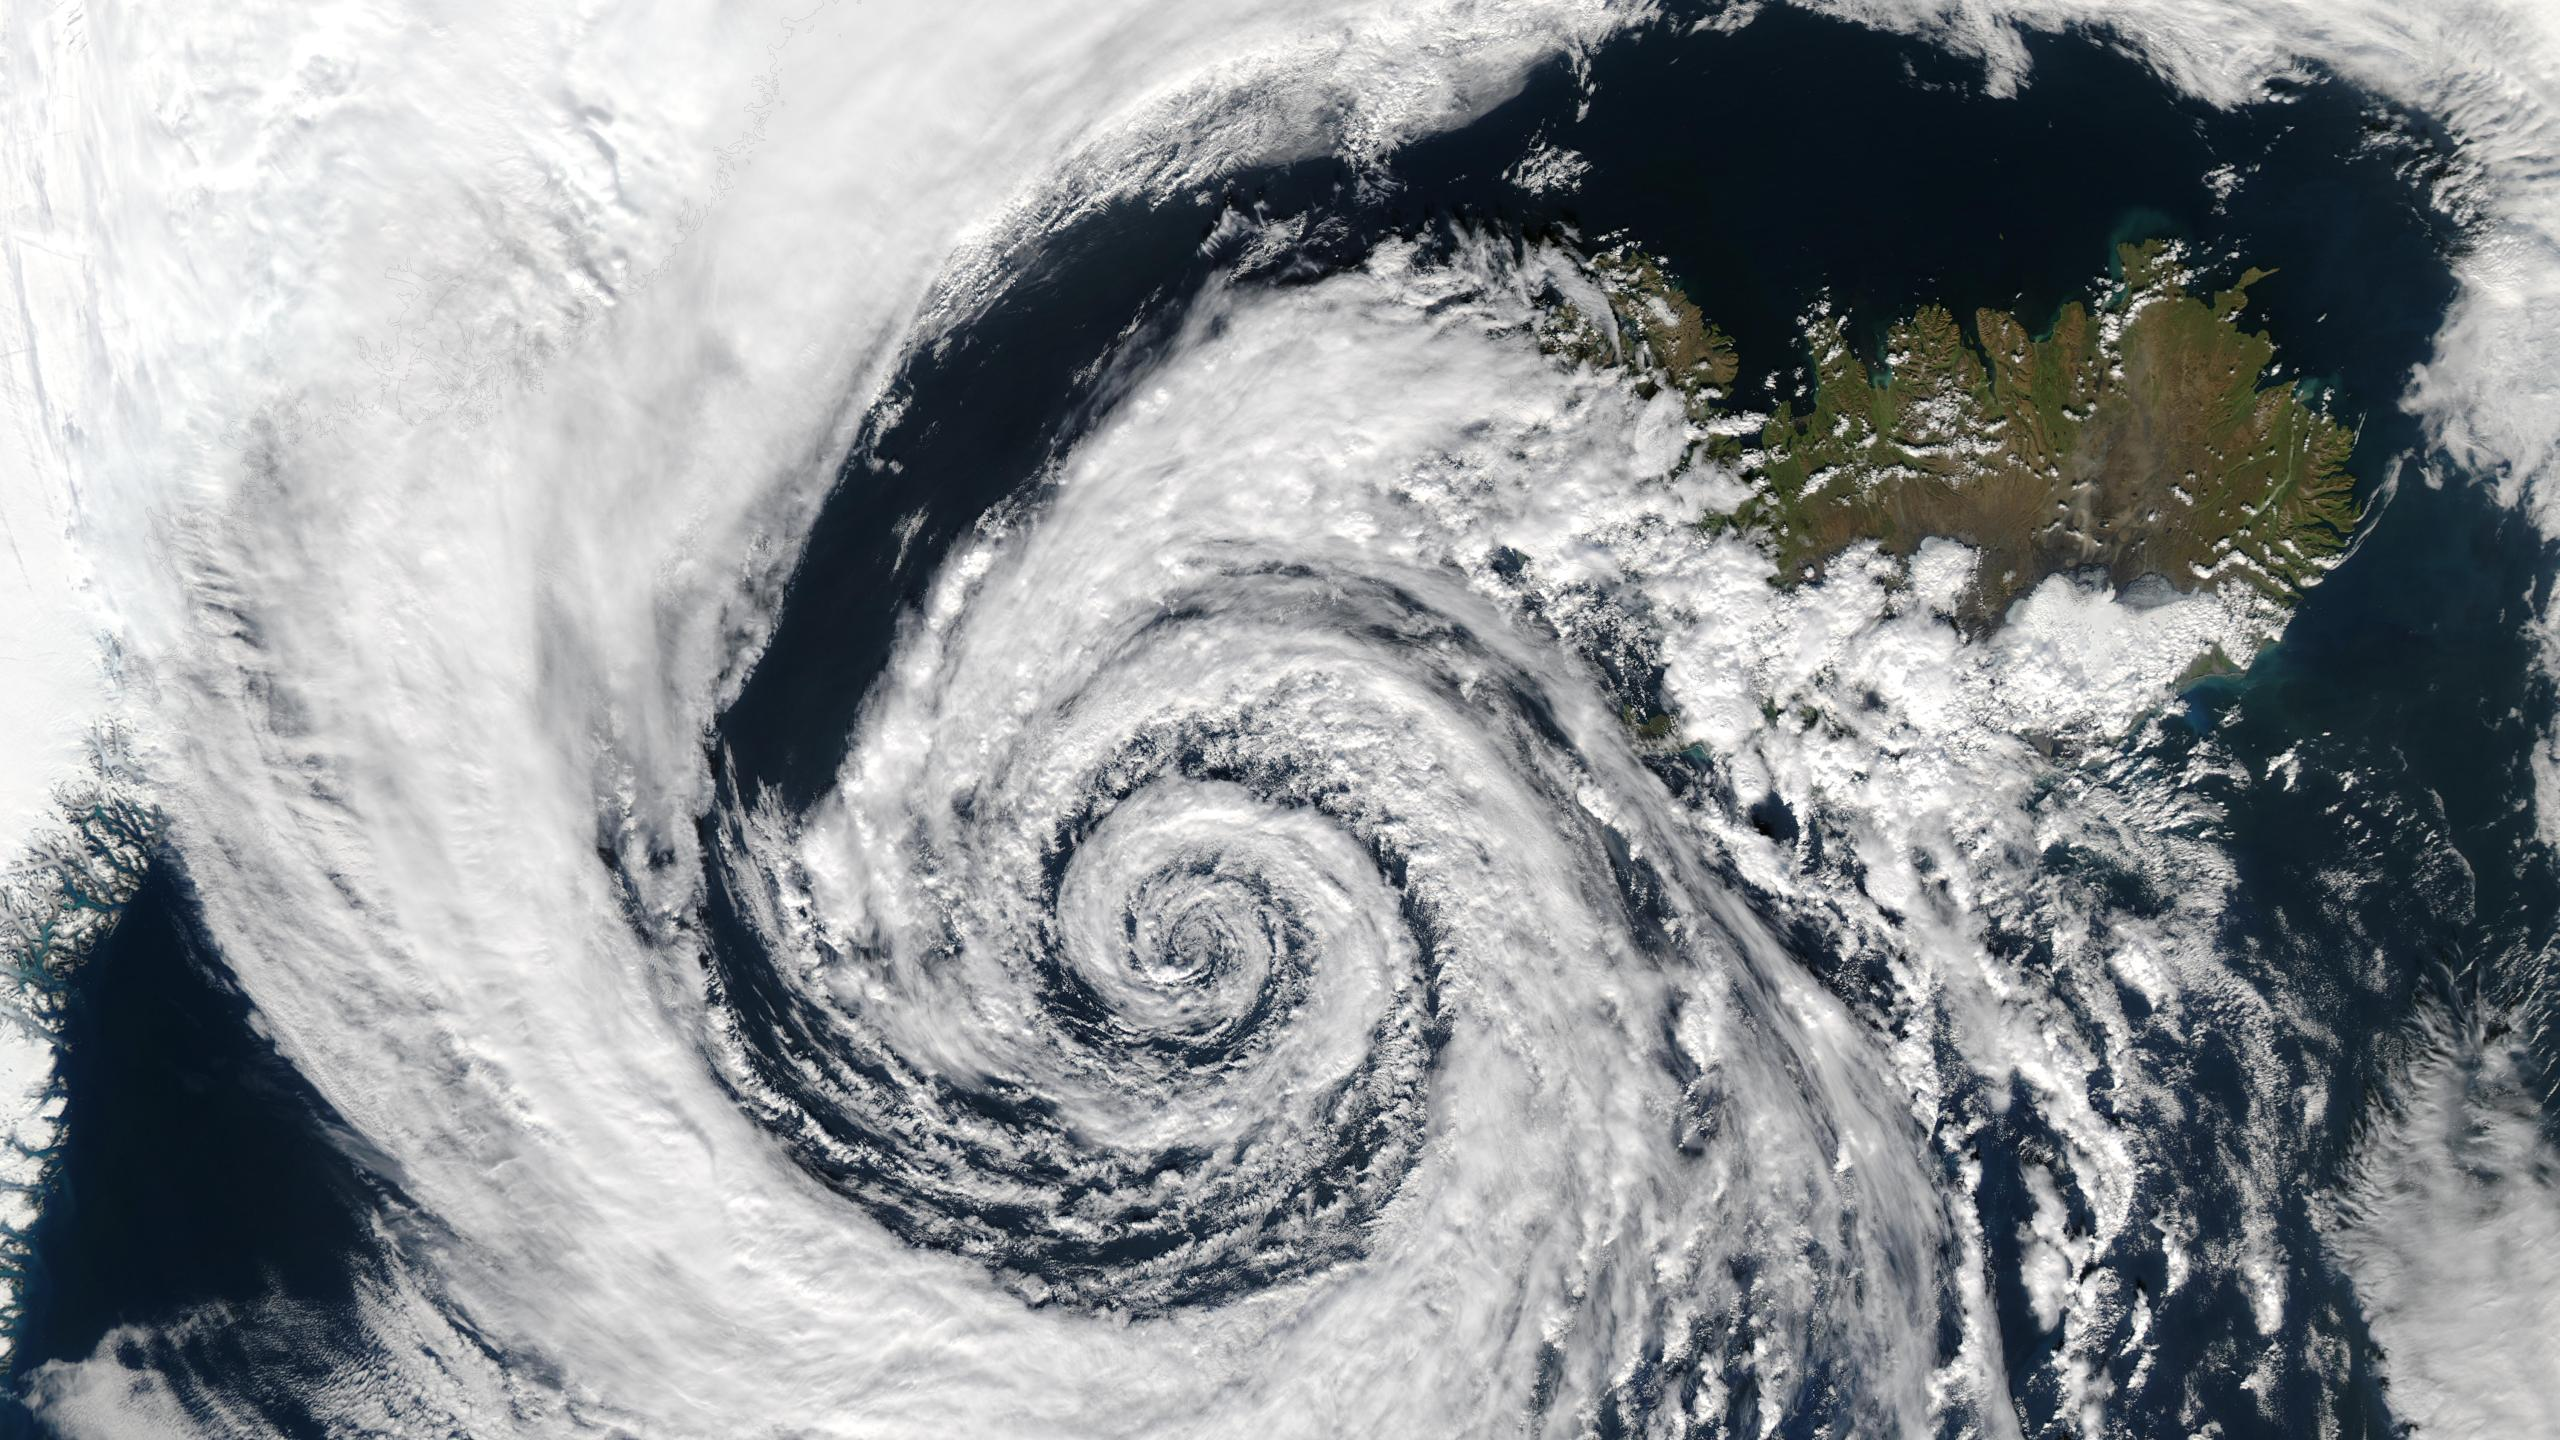 Low_pressure_system_over_Iceland_163773